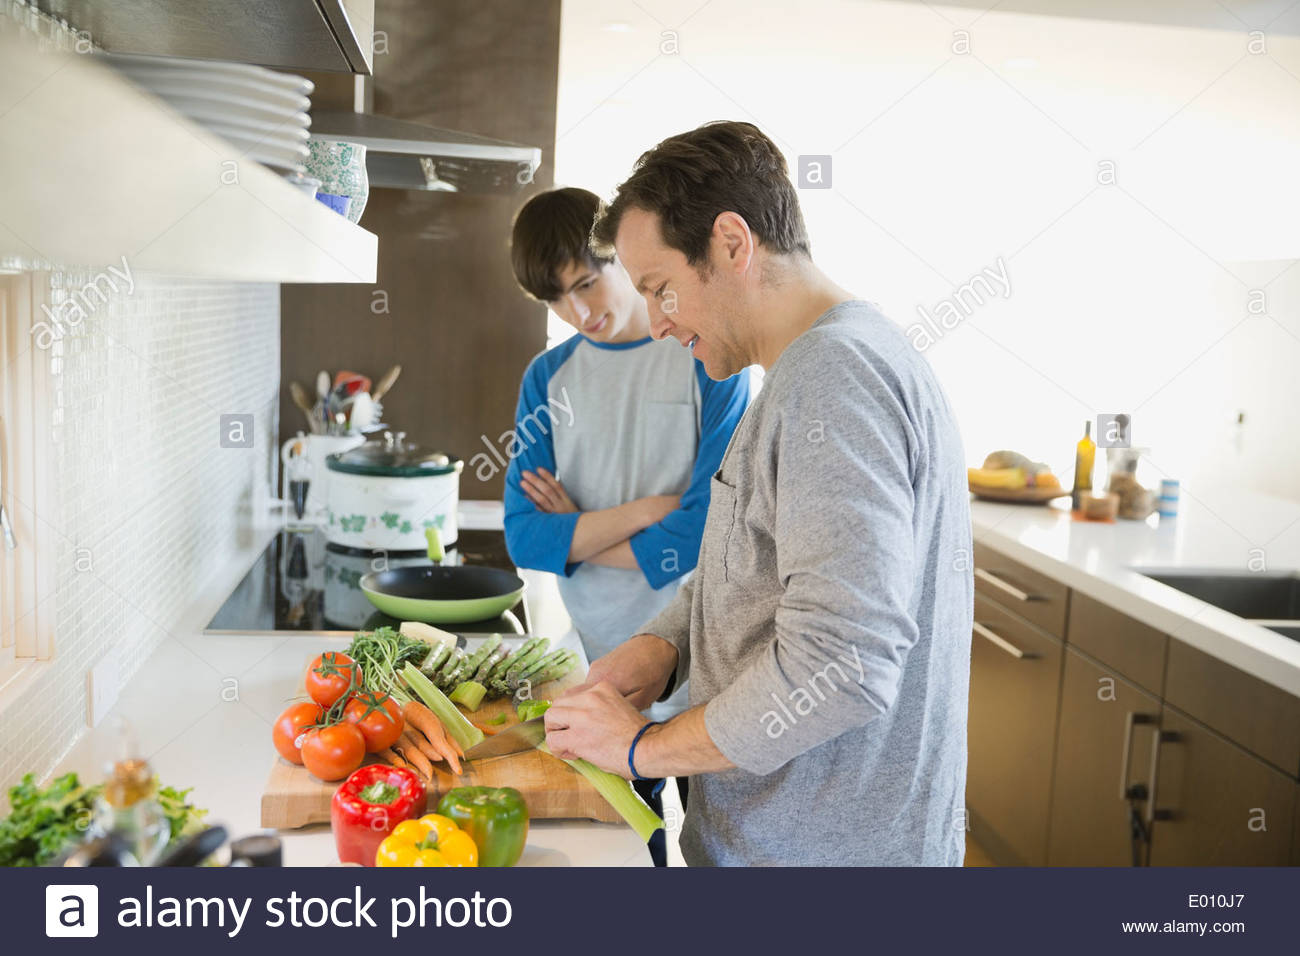 Father teaching son to cook in kitchen - Stock Image